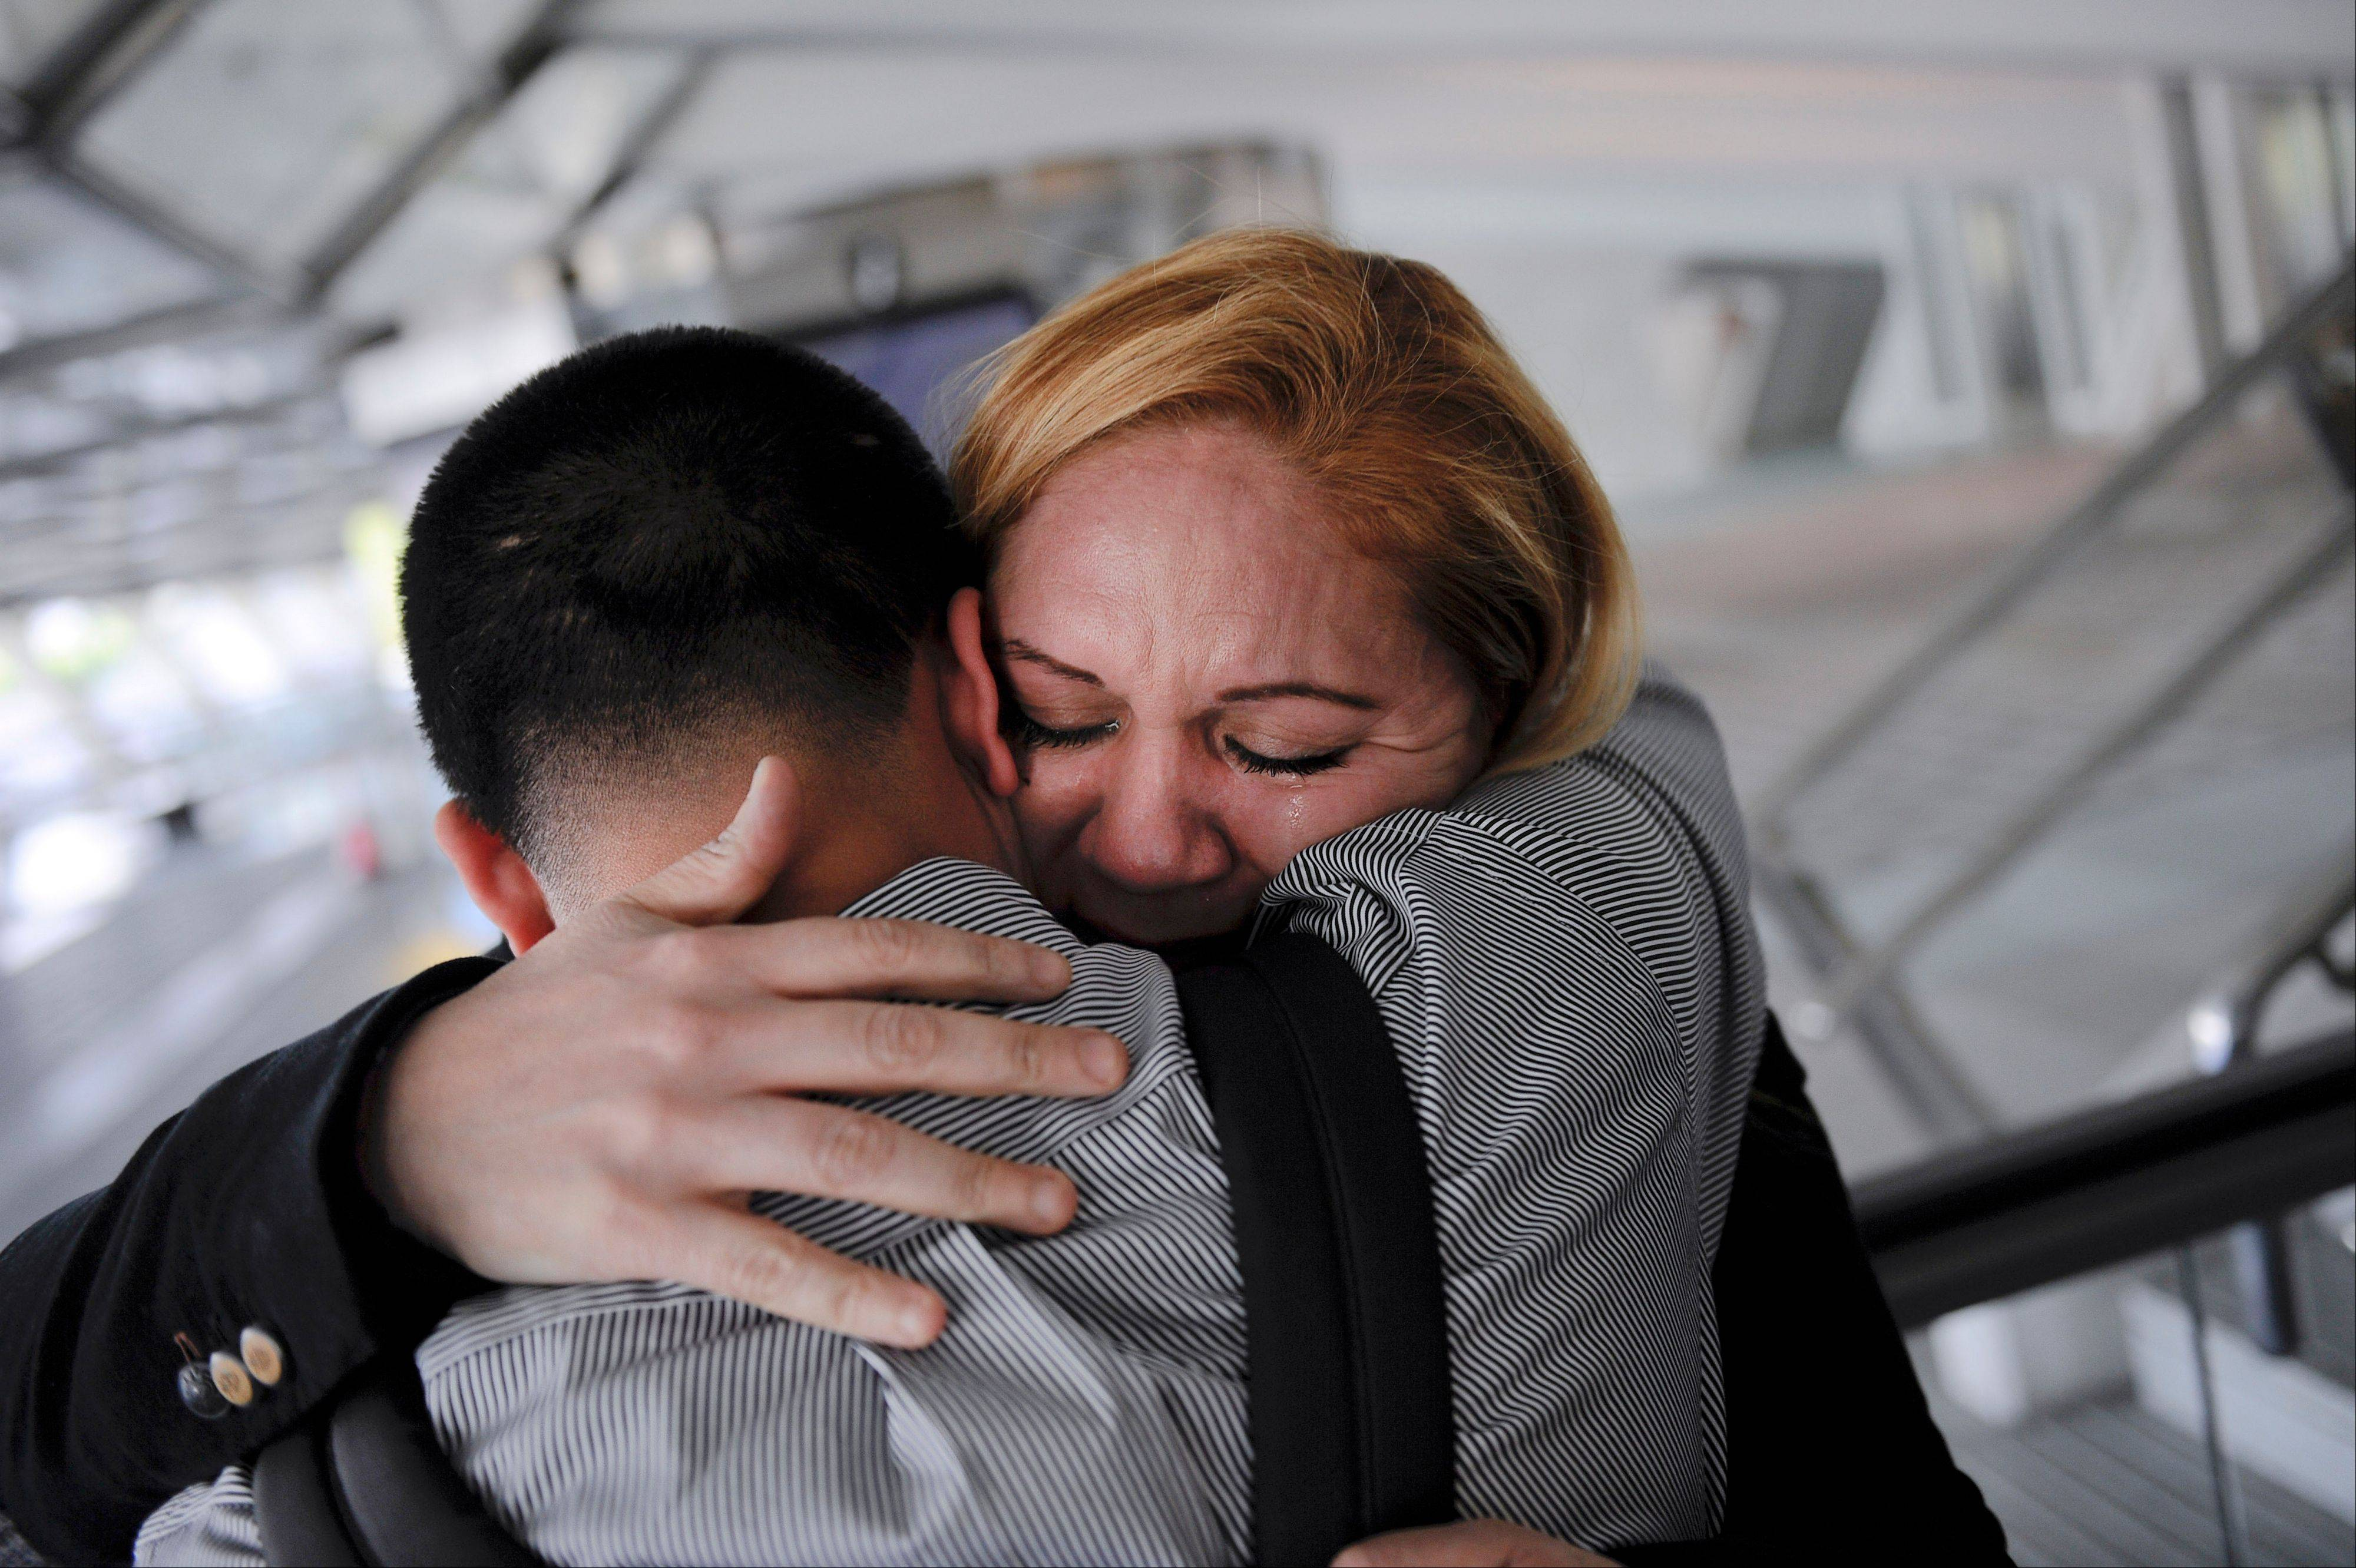 In this Wednesday, Dec. 25, 2013 photo, Melba Soza embraces her son Jose Antonio as he arrives at the airport in Bilbao, Spain from the United States for a five-day visit with his mother. For the past three years, Jose has been on a mission: To bring his mother back to the U.S. His work has taken him to Congress, gotten him meetings with the likes of Donald Trump and Mark Zuckerberg, landed him on television. Along the way, he has grown into a steady force in the national immigration debate, a young but powerful voice for his family and the many others hoping to one day reunite.